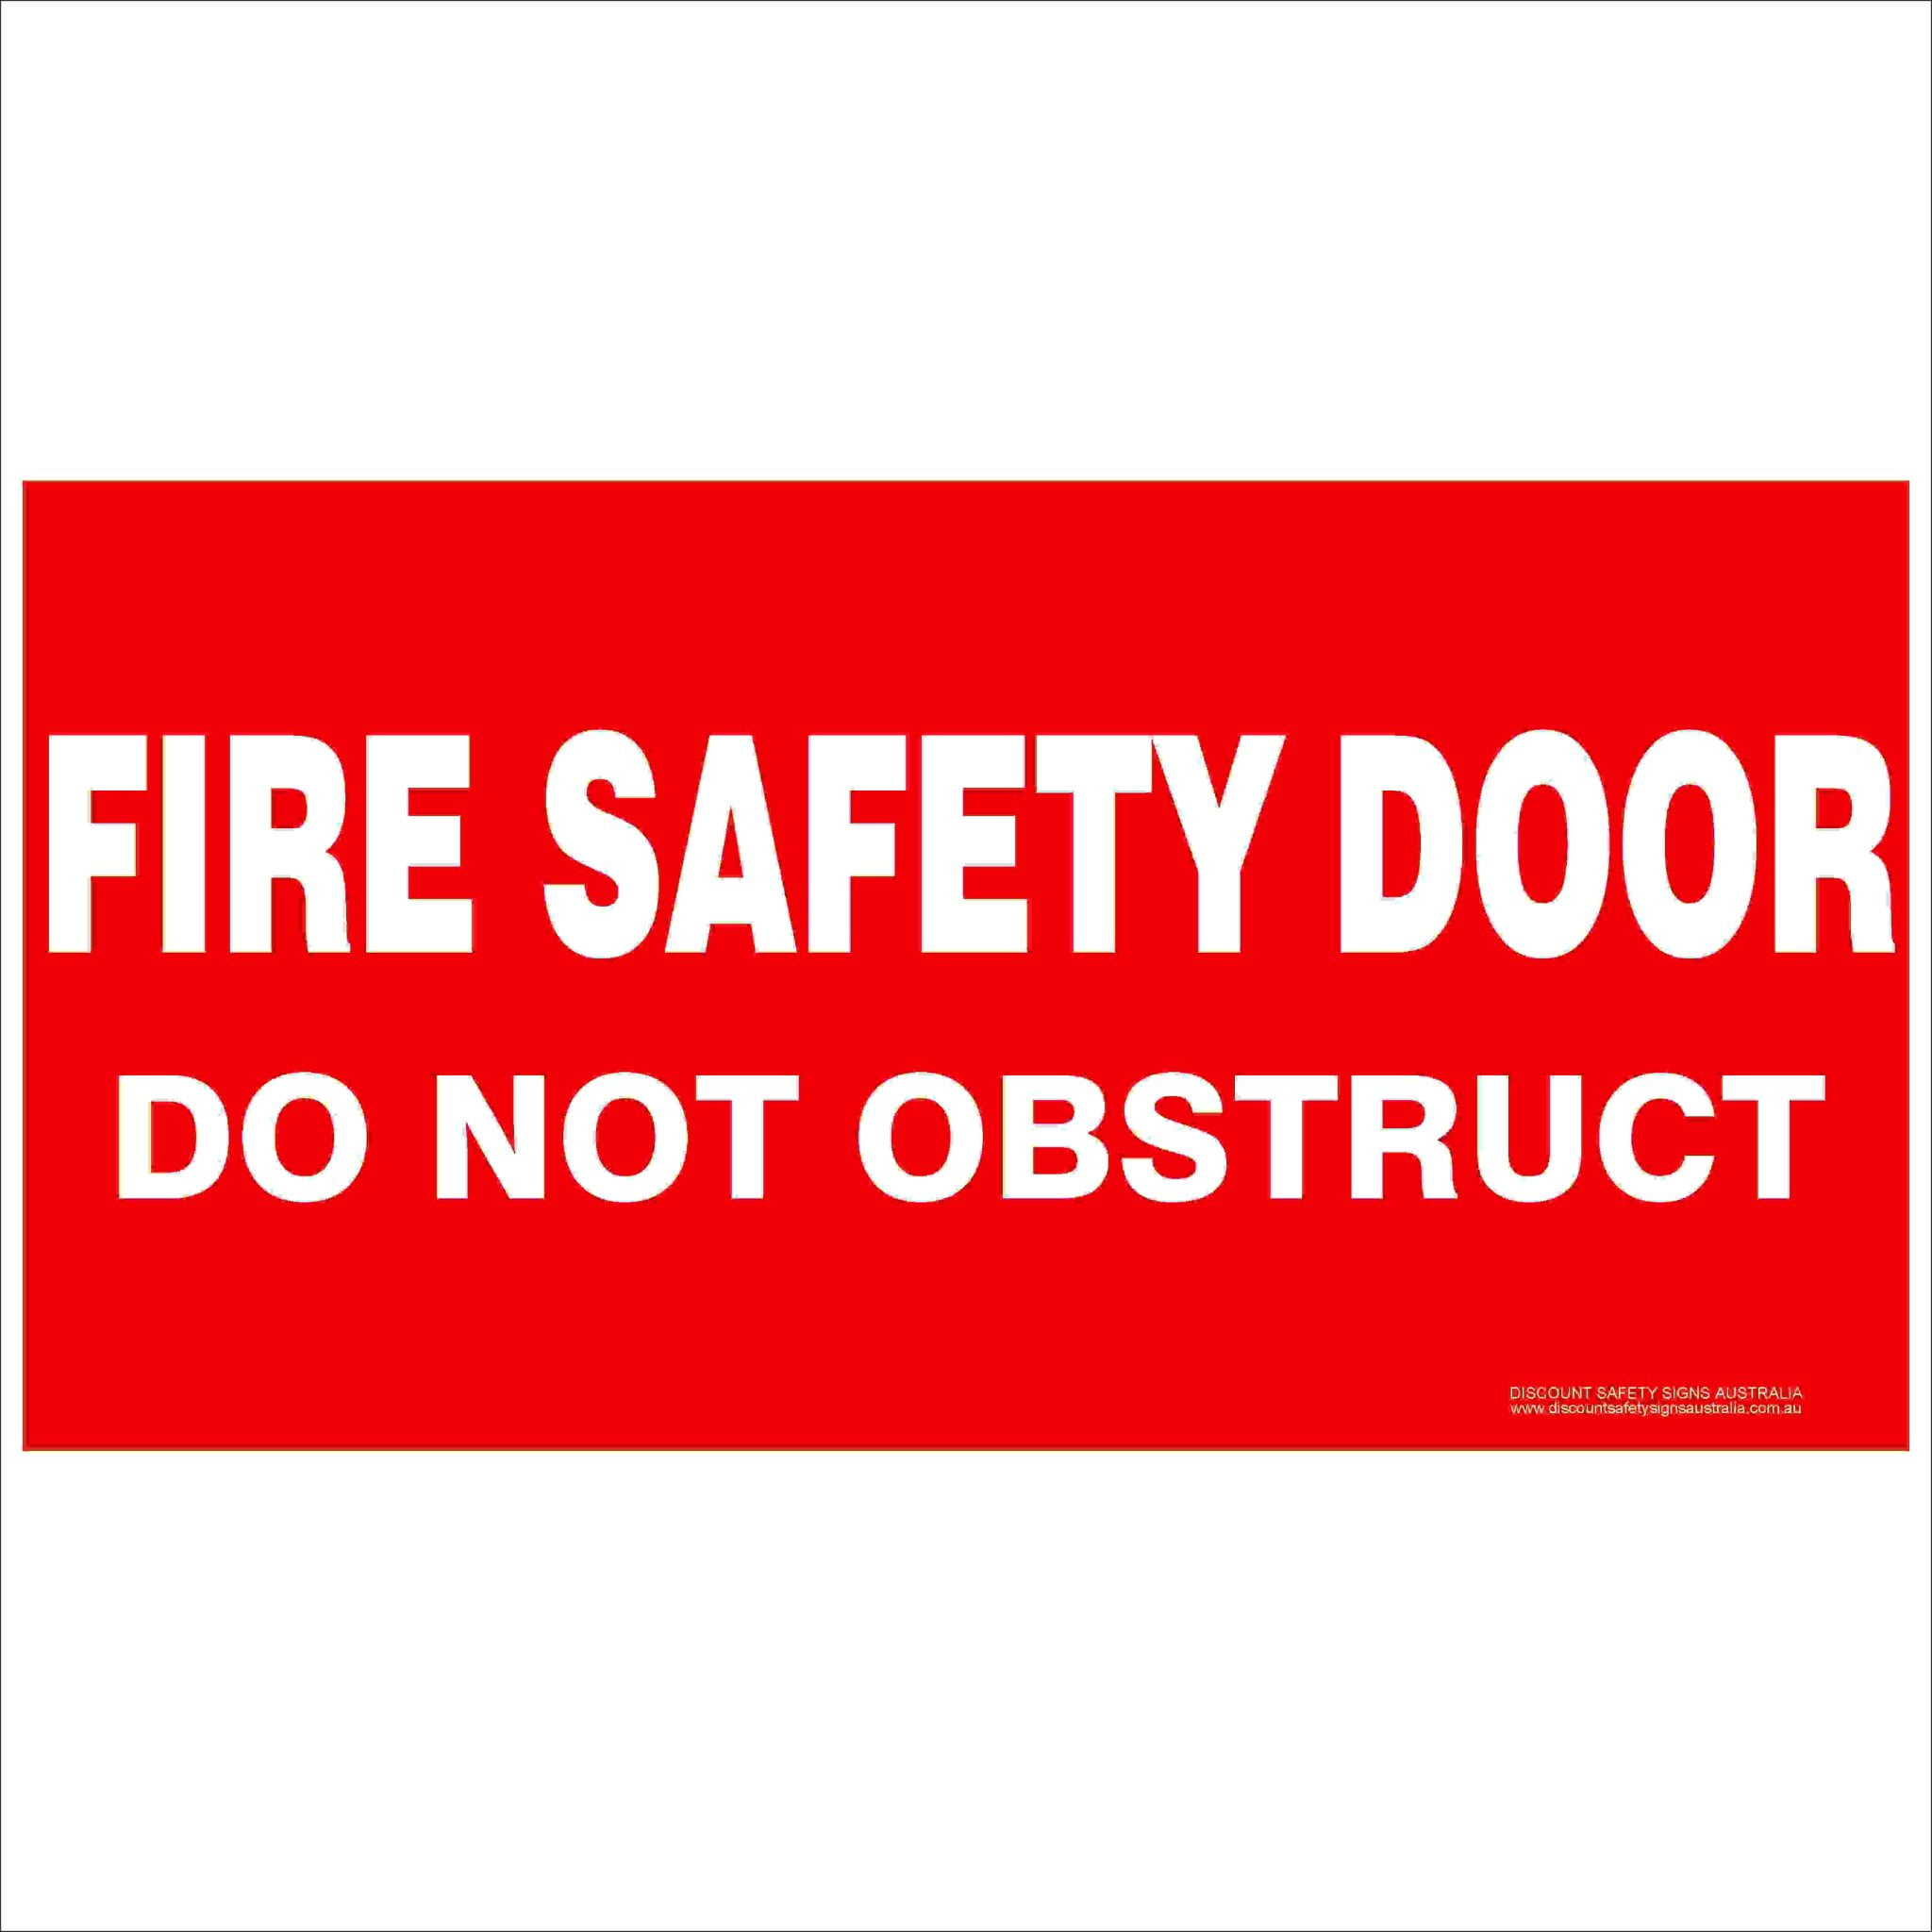 Fire Safety Signs FIRE SAFETY DOOR DO NOT OBSTRUCT 350